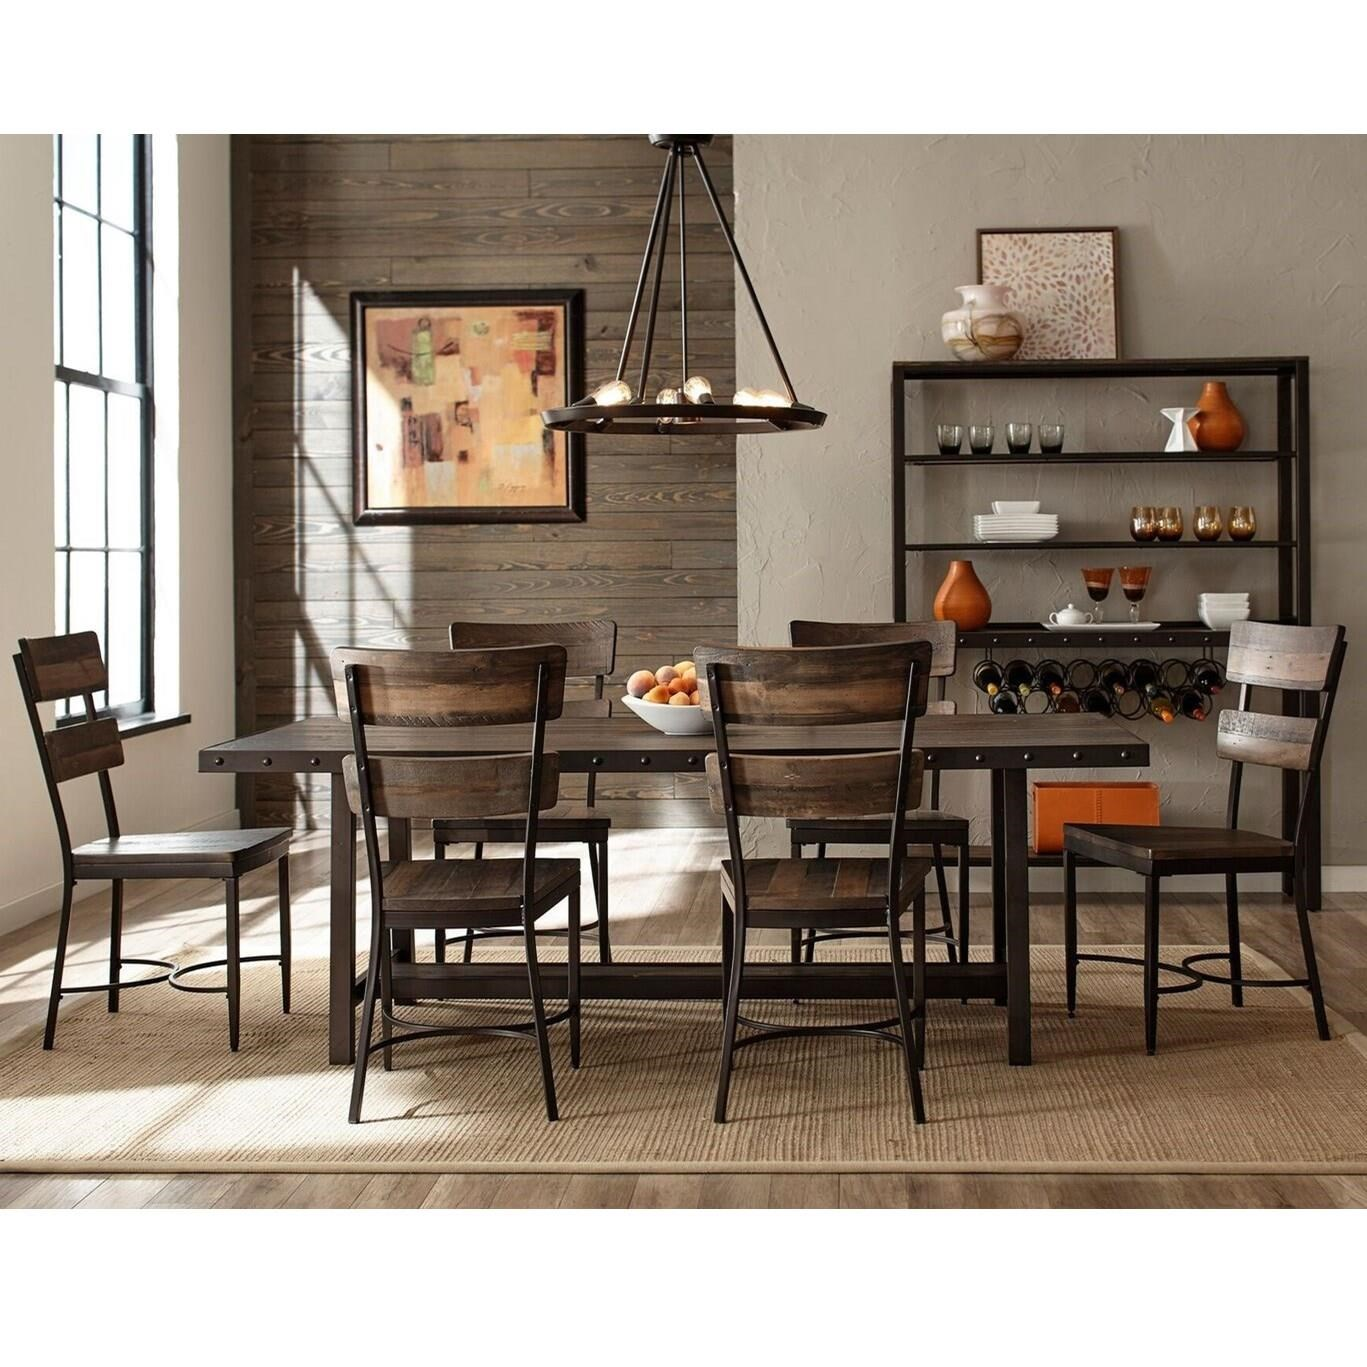 Hillsdale Jennings 4022DTB7PC Industrial Dining Room Set